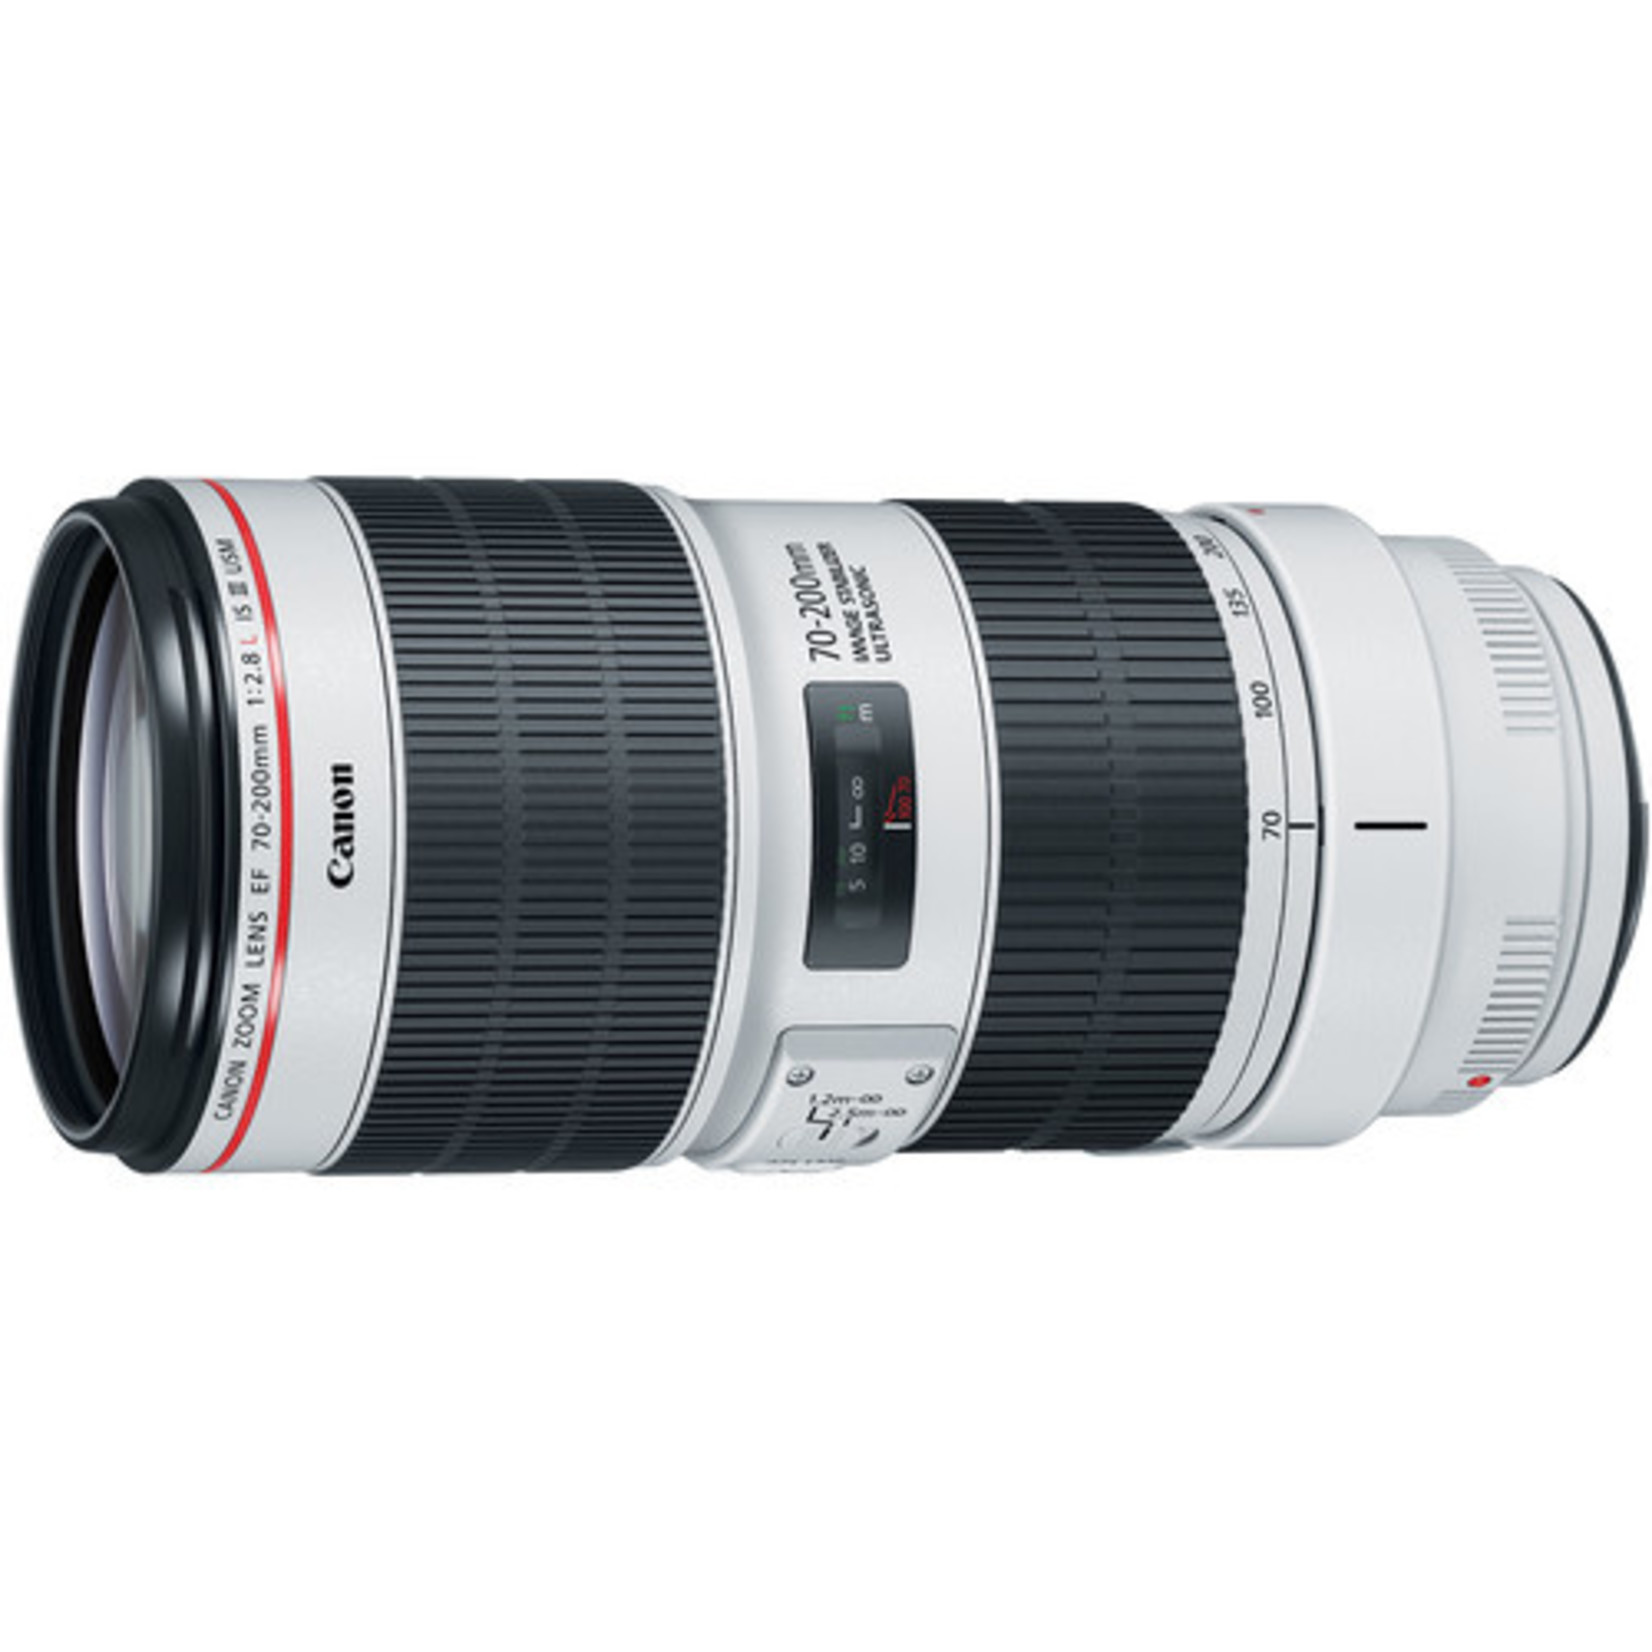 Canon Canon EF 70-200mm f/2.8L IS III USM Lens